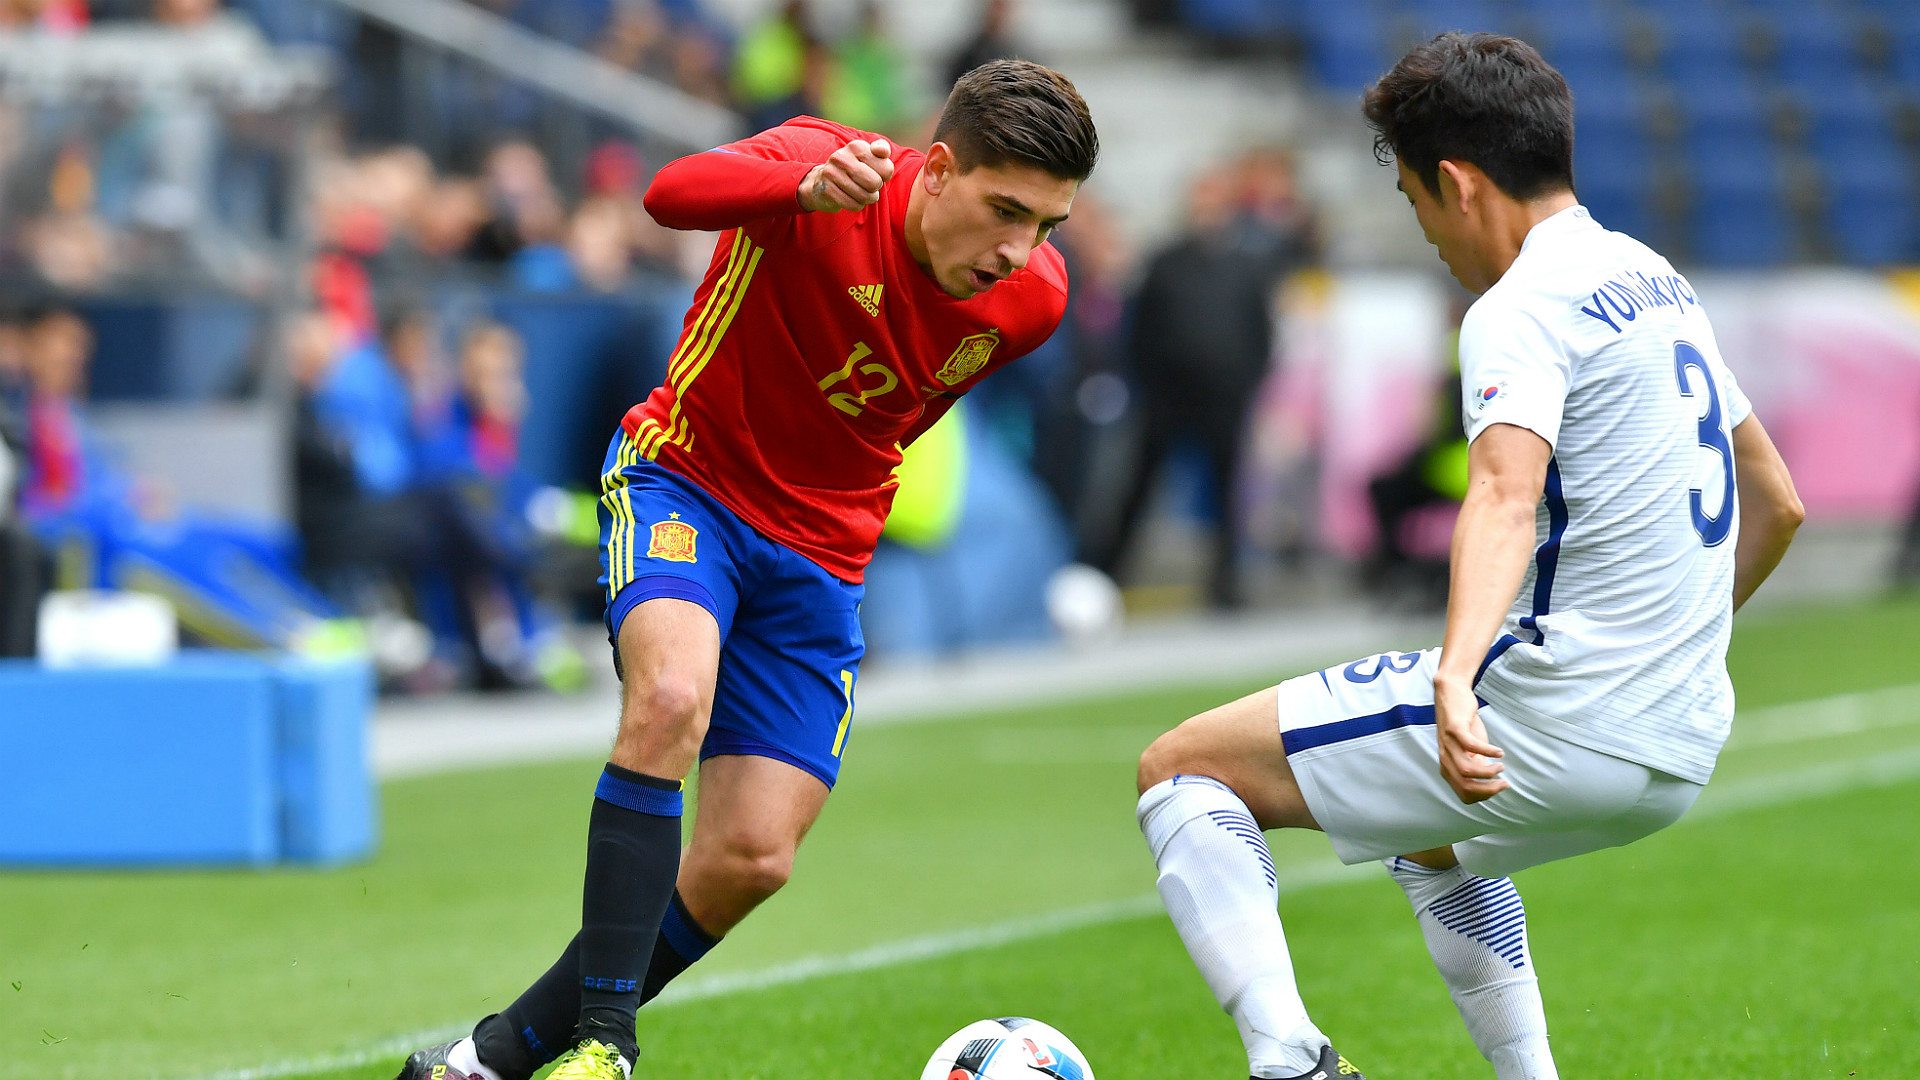 Arsenal's Nacho Monreal expects Hector Bellerin to stay despite Barcelona transfer interest